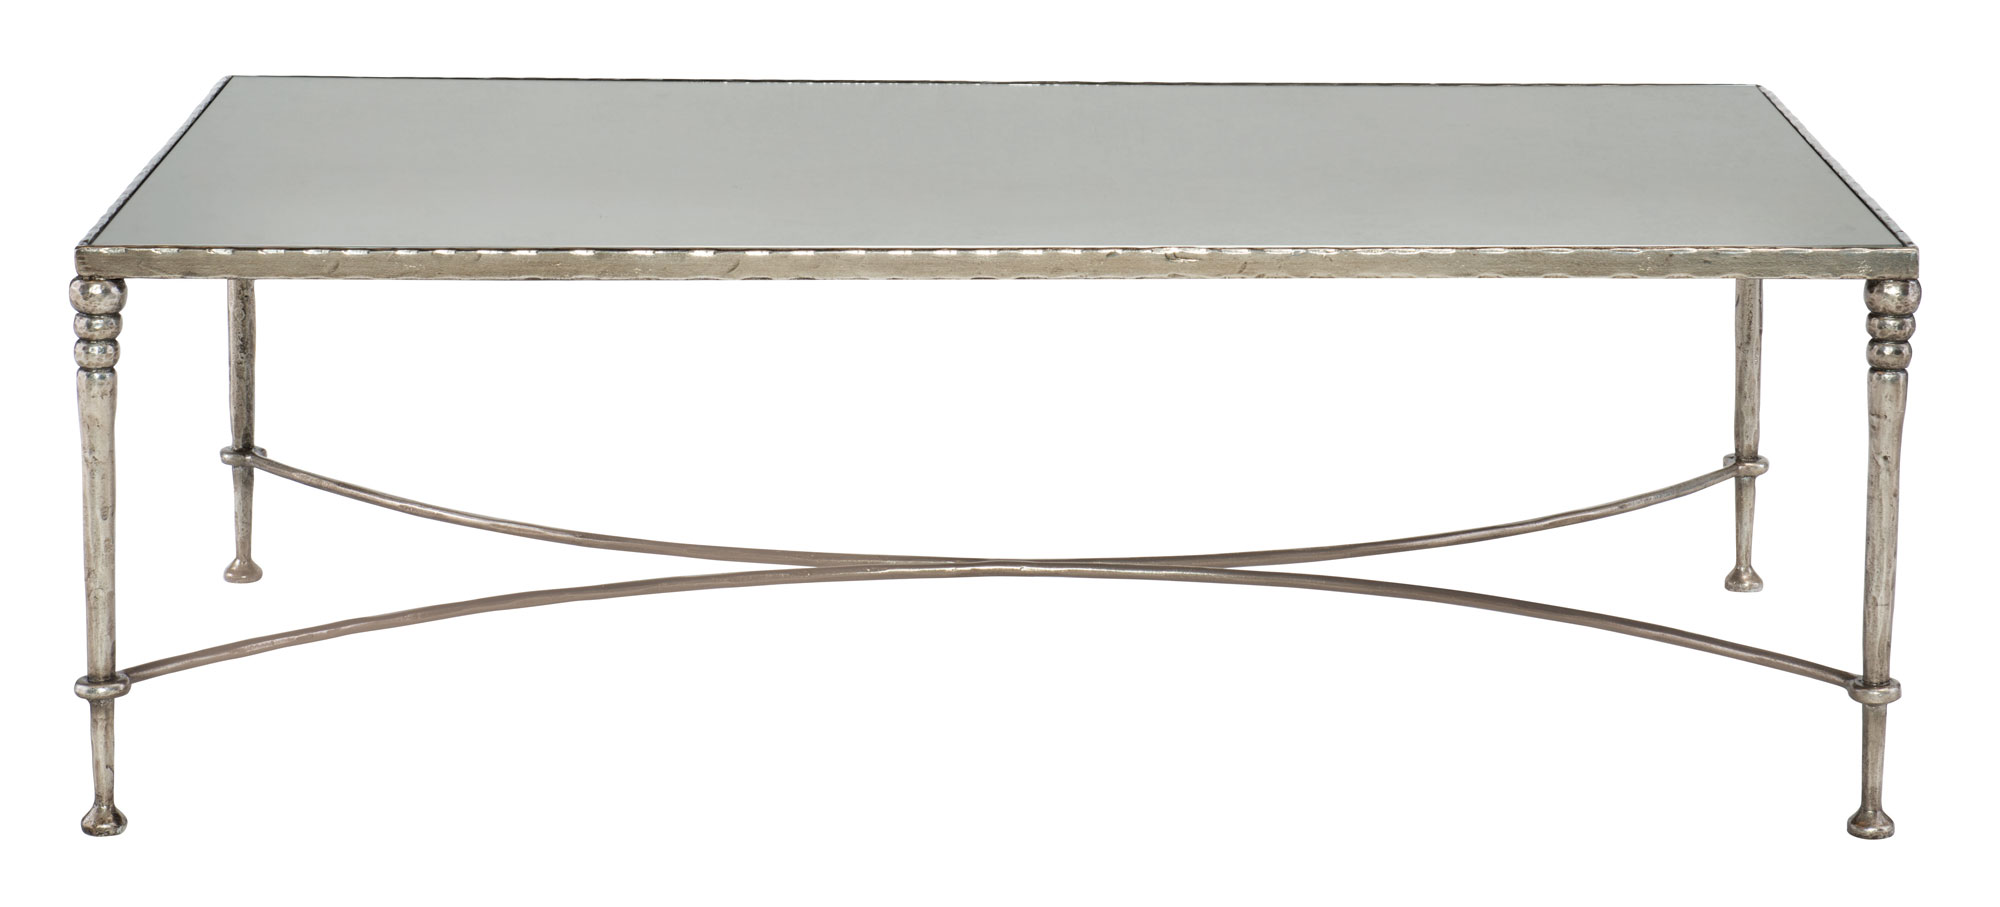 High Quality Orleans Rectangular Cocktail Table